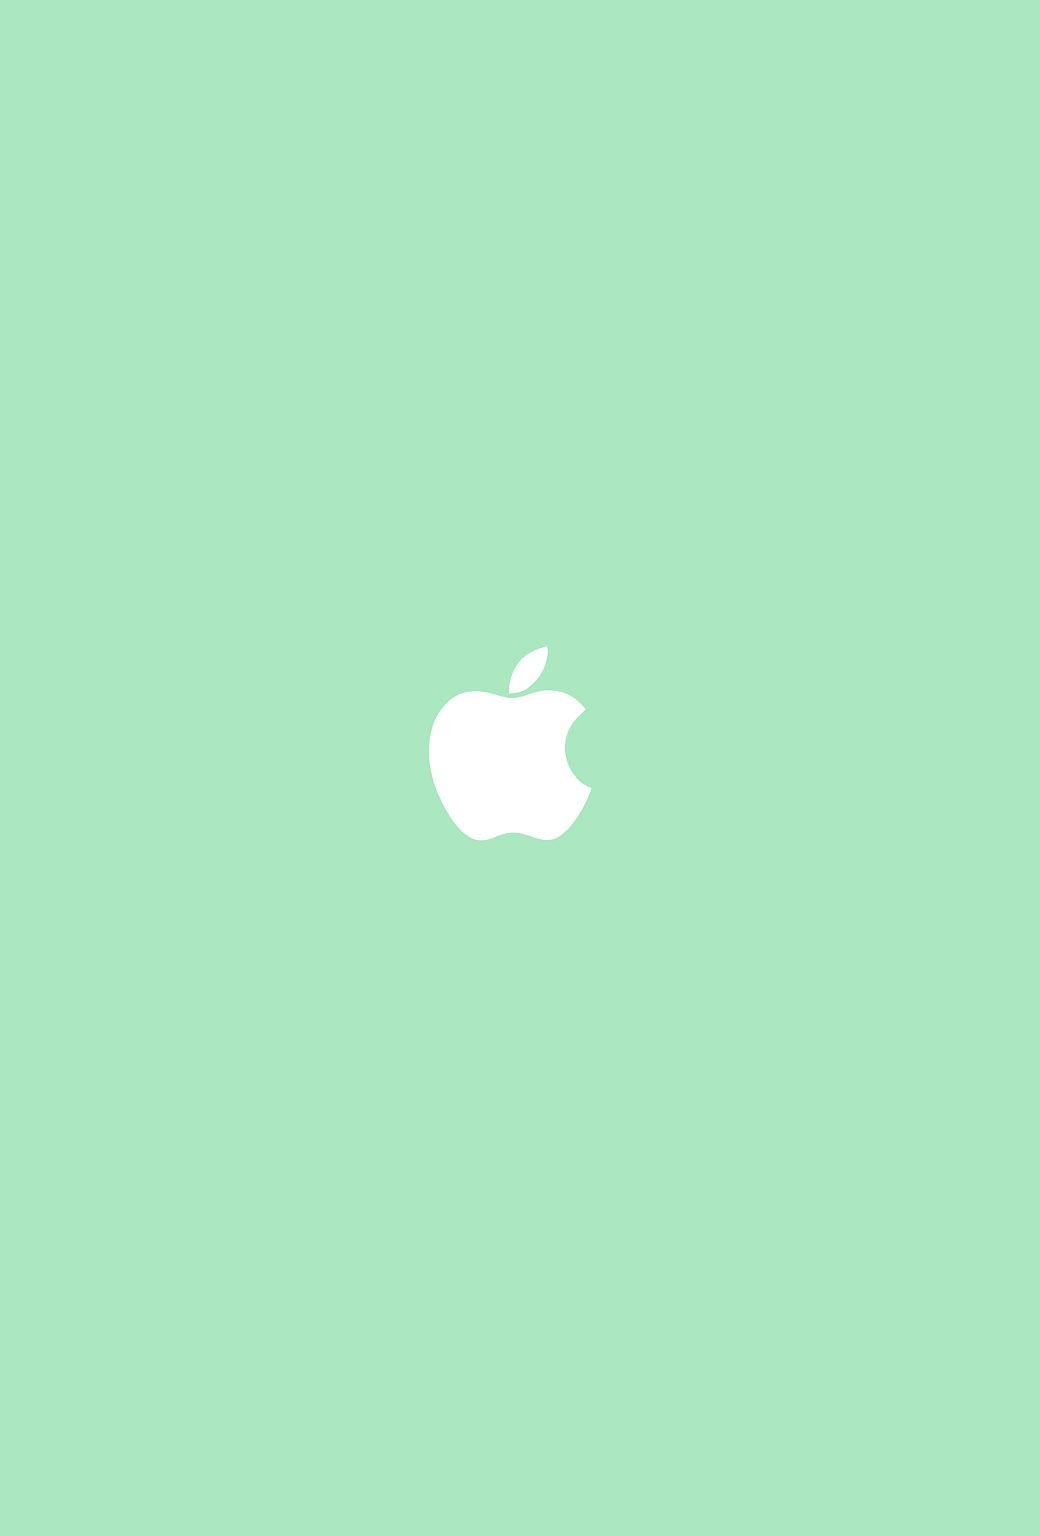 Iphone Ios 7 Wallpaper Tumblr For Ipad Fond D Ecran Iphone